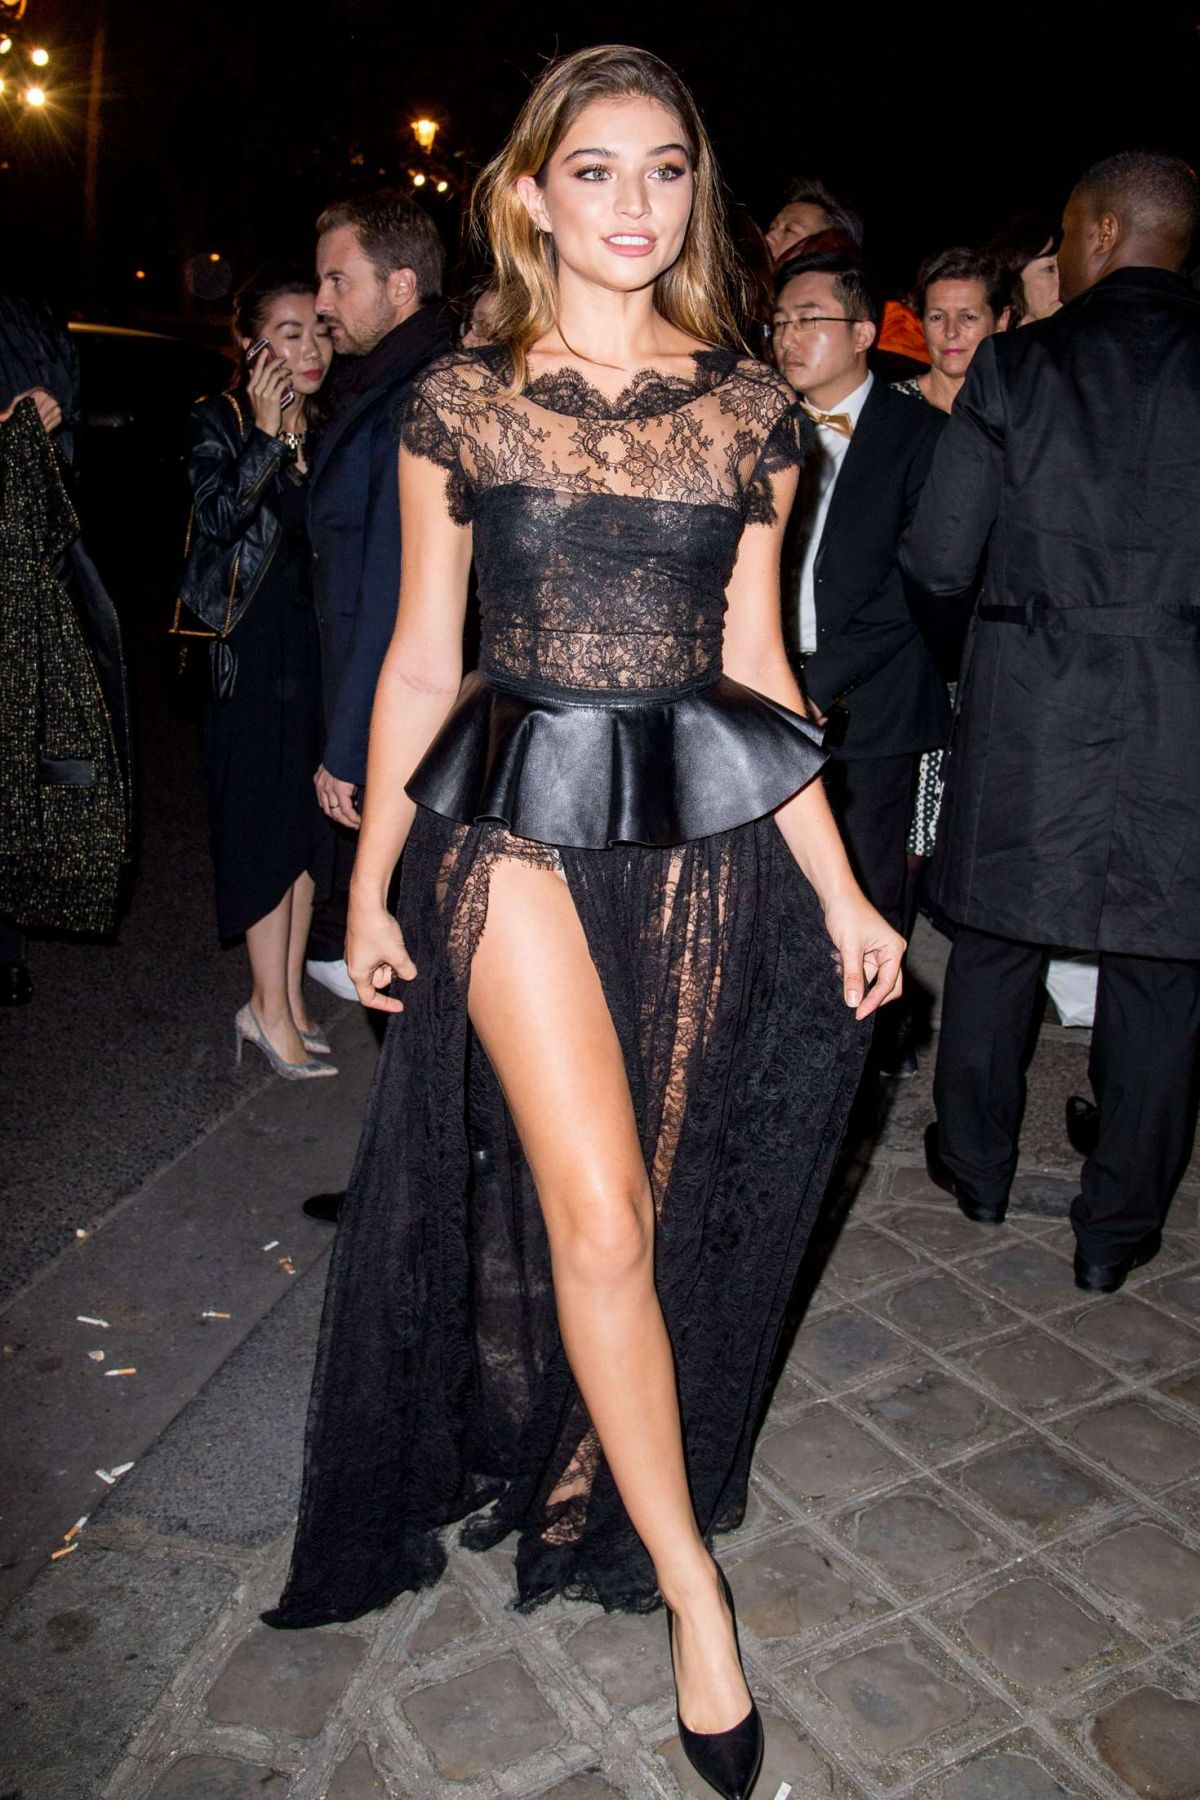 DANIELA LOPEZ OSORIO at Gold Obsession Party at Paris Fashion Week 10/02/2016